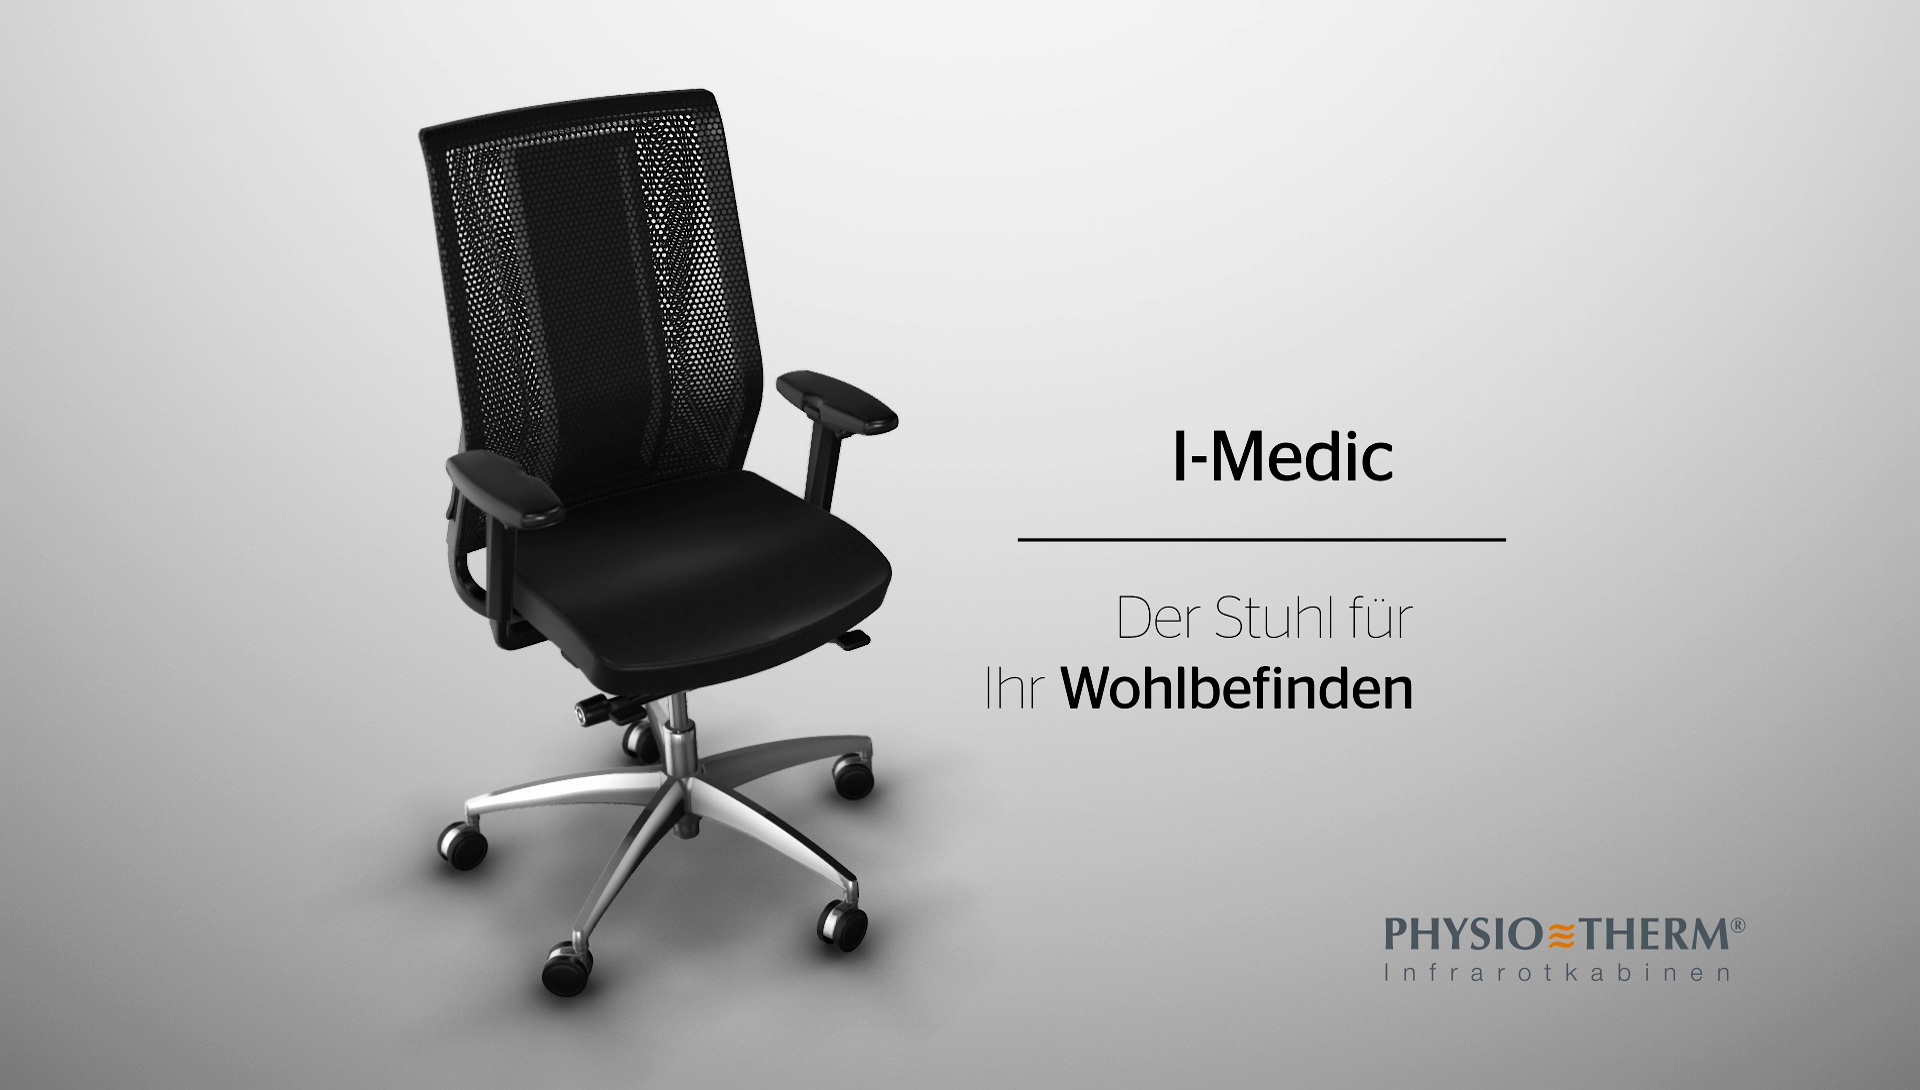 Wagner Burostuhl Imedic 10 Powered By Physiotherm 1 595 00